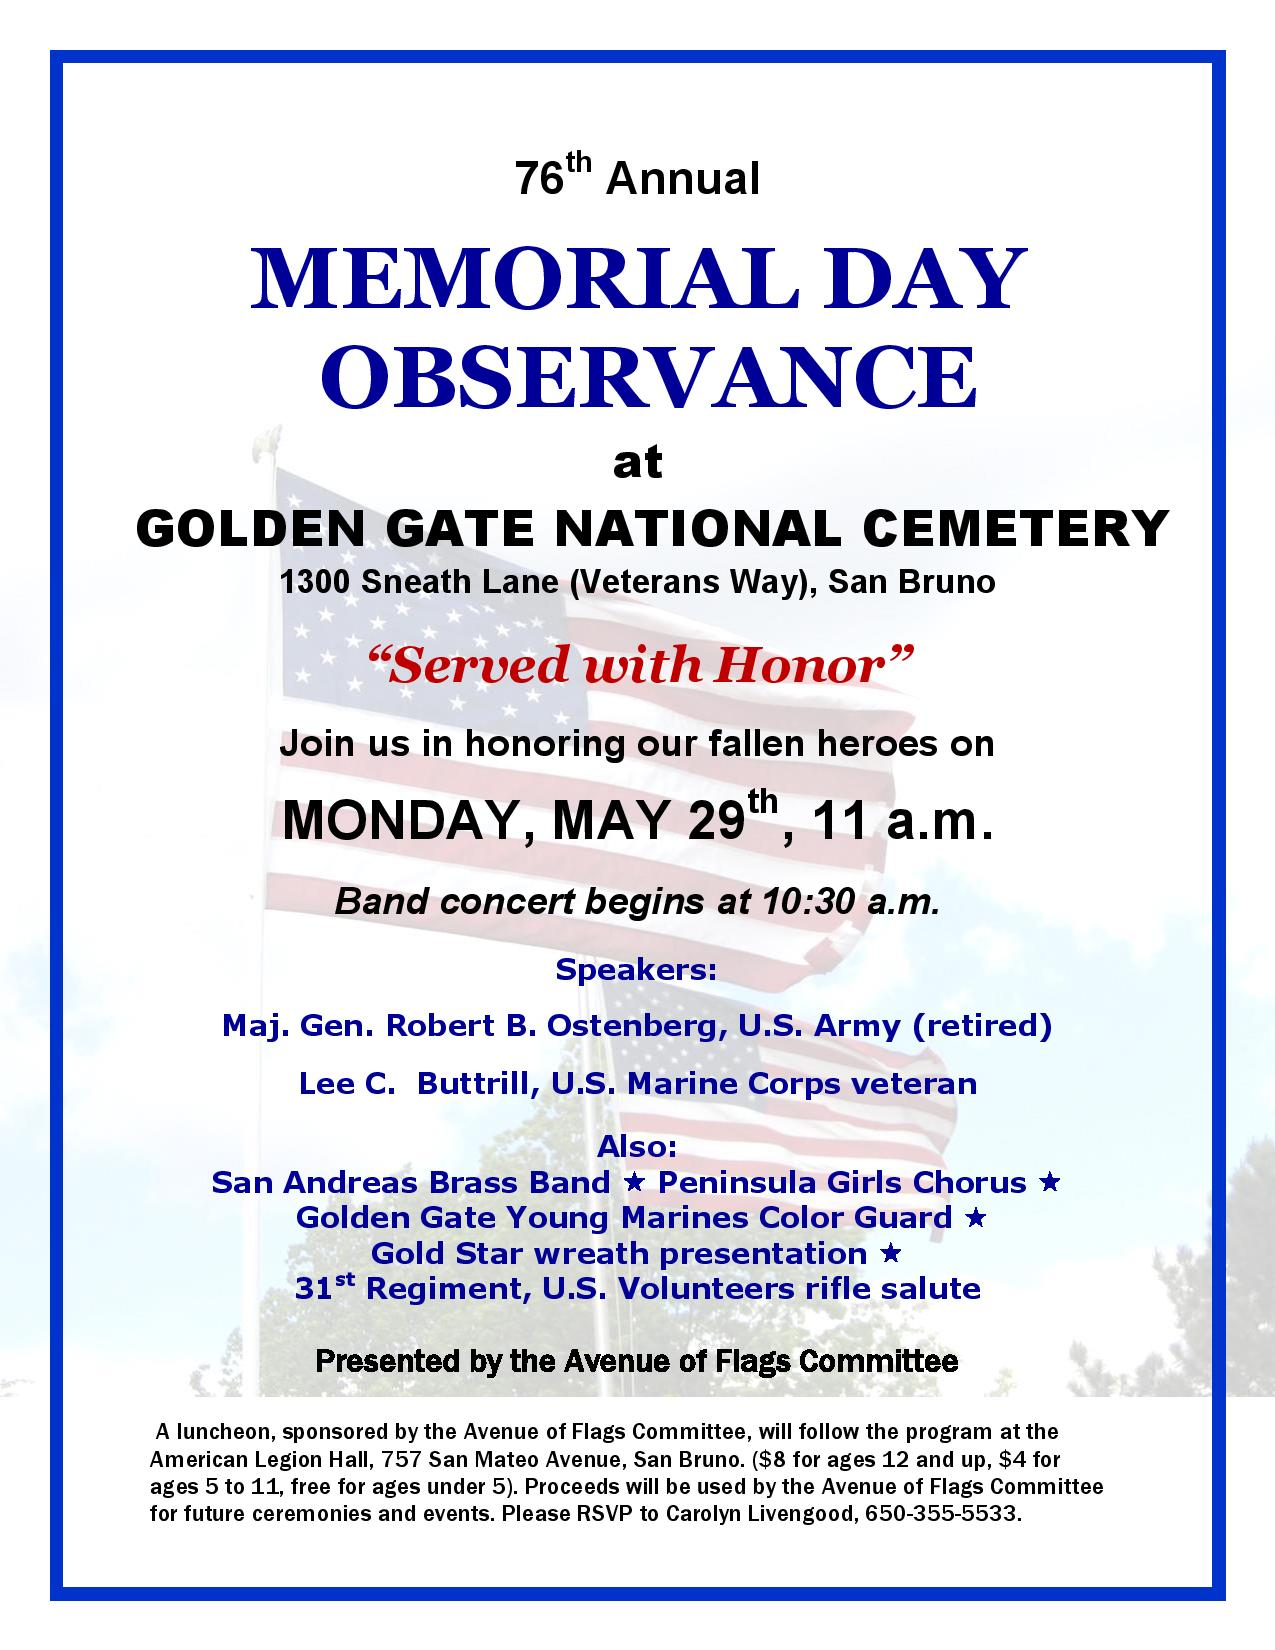 Public Invited to GGNC Avenue of Flags Memorial Day Observance